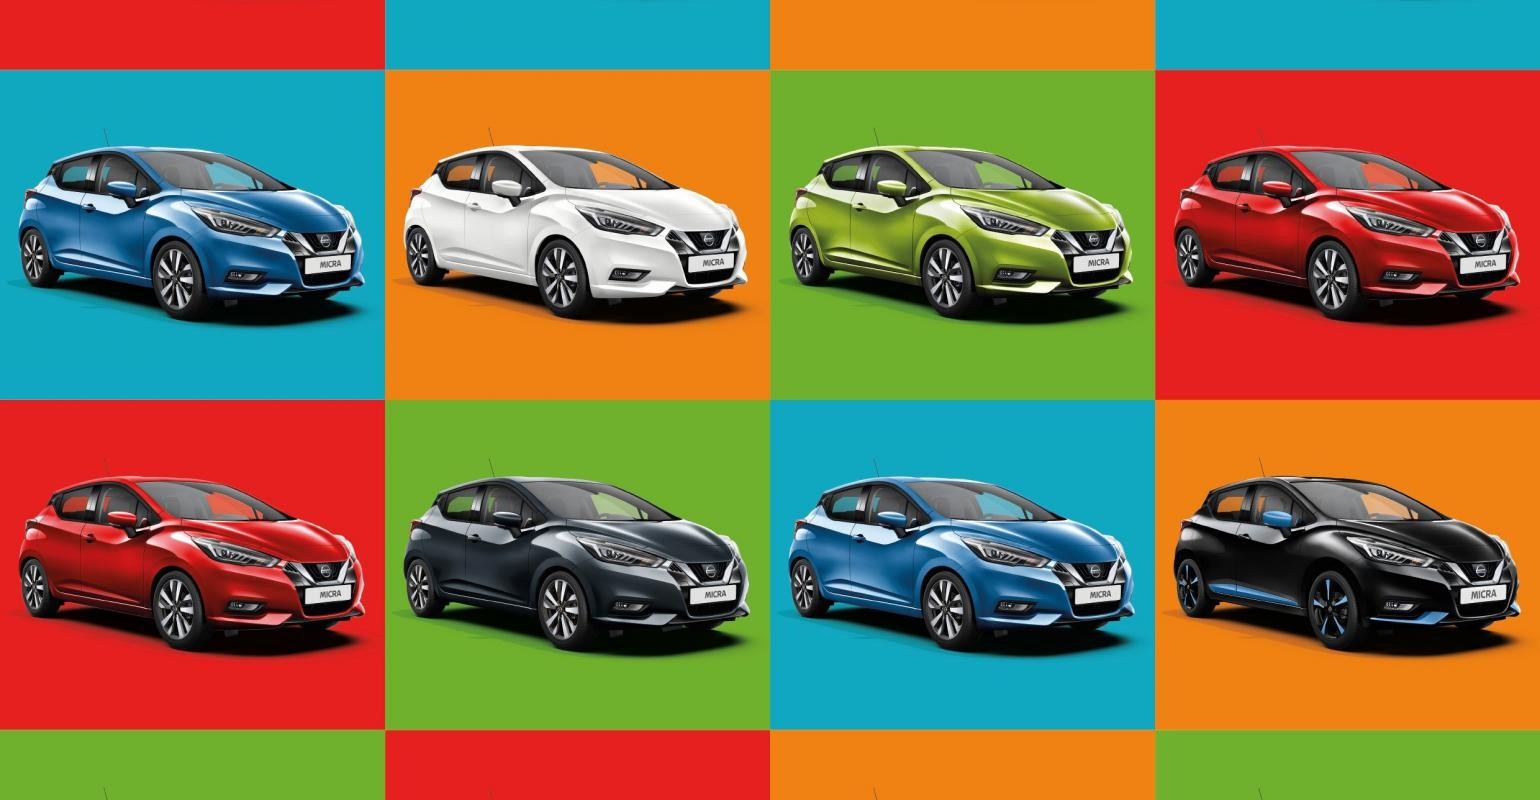 Nissan Psychologist Team To Match Car Color With Personality Type